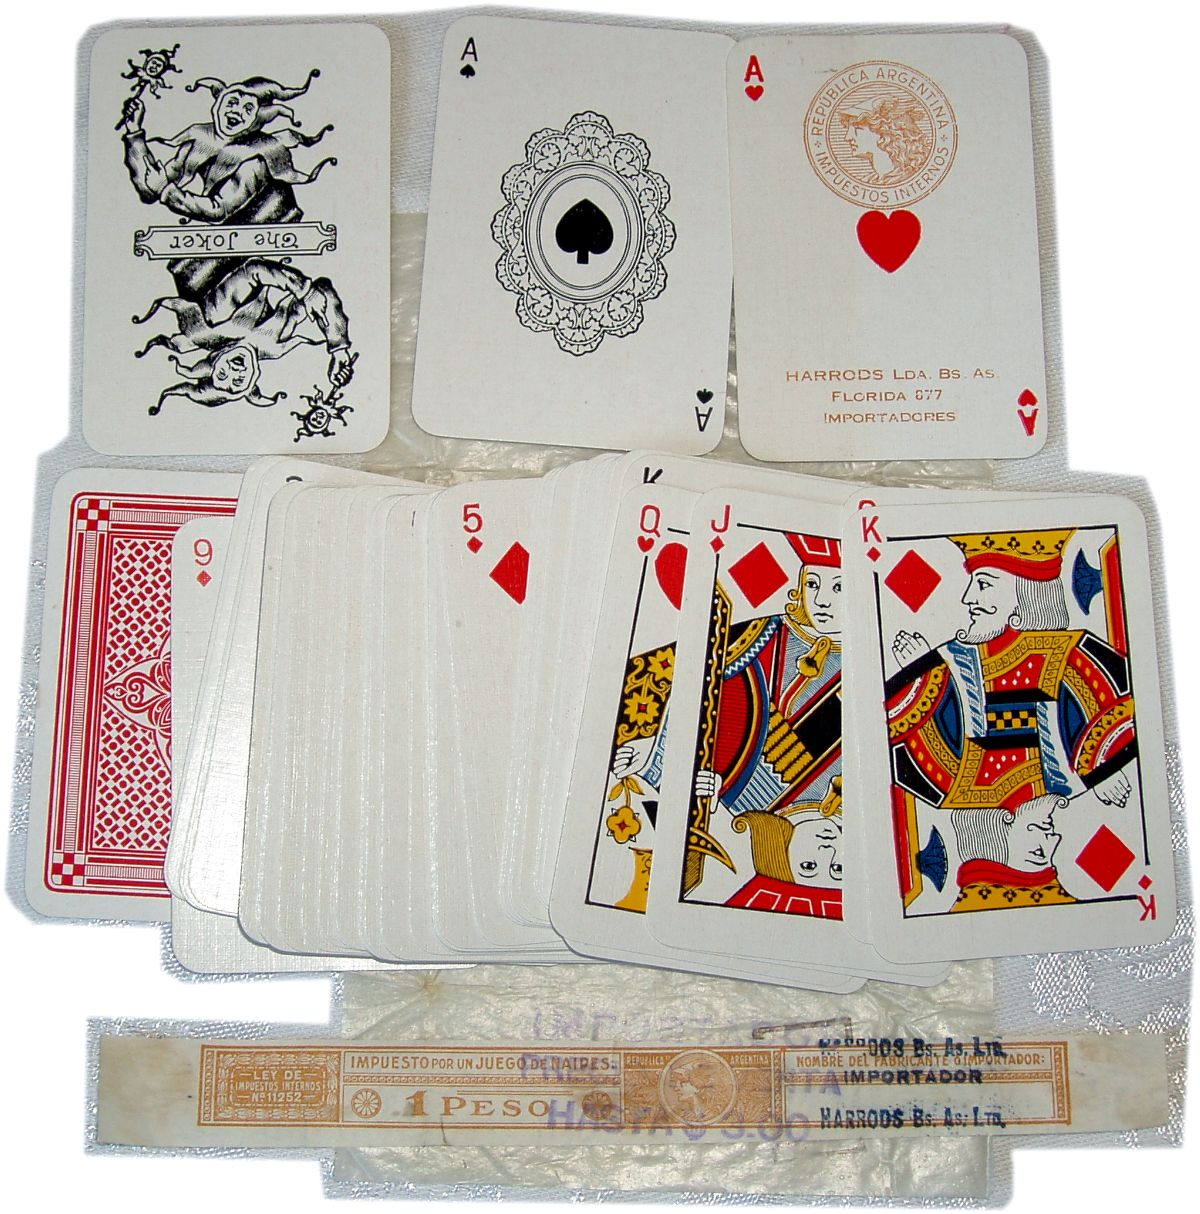 Patience playing cards with doilly ace of spades for Harrods, Buenos Aires Ltd, c.1920